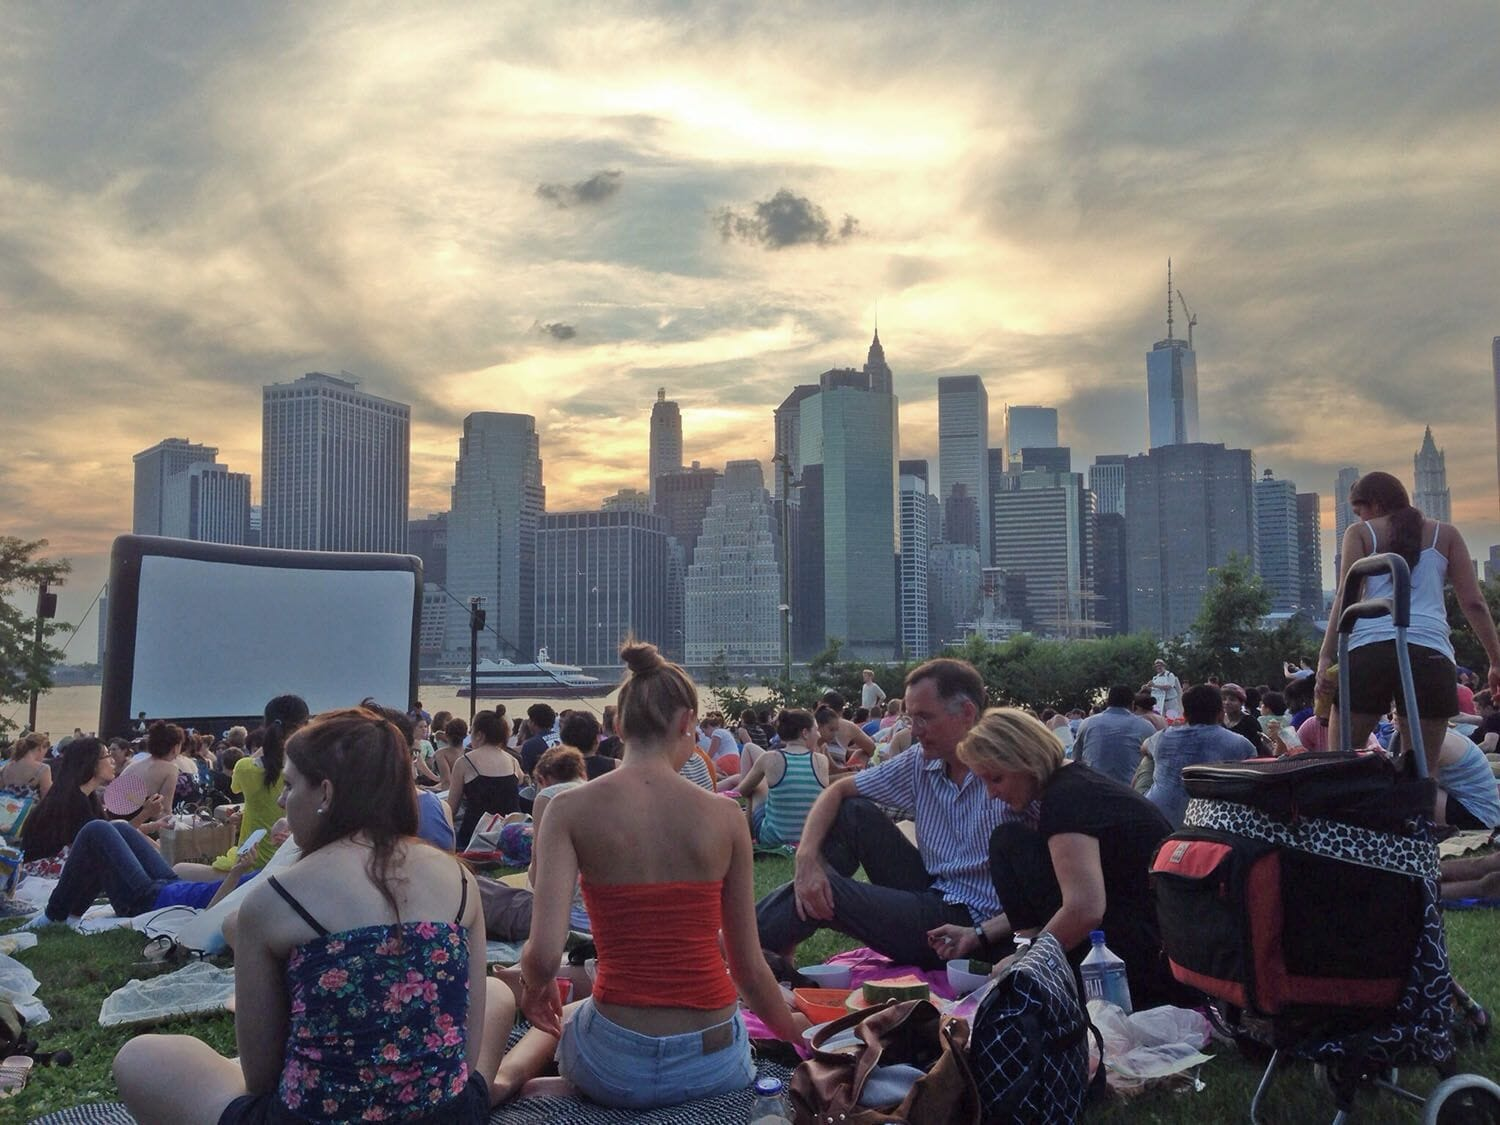 Cine al aire libre en Nueva York Brooklyn Bridge Park